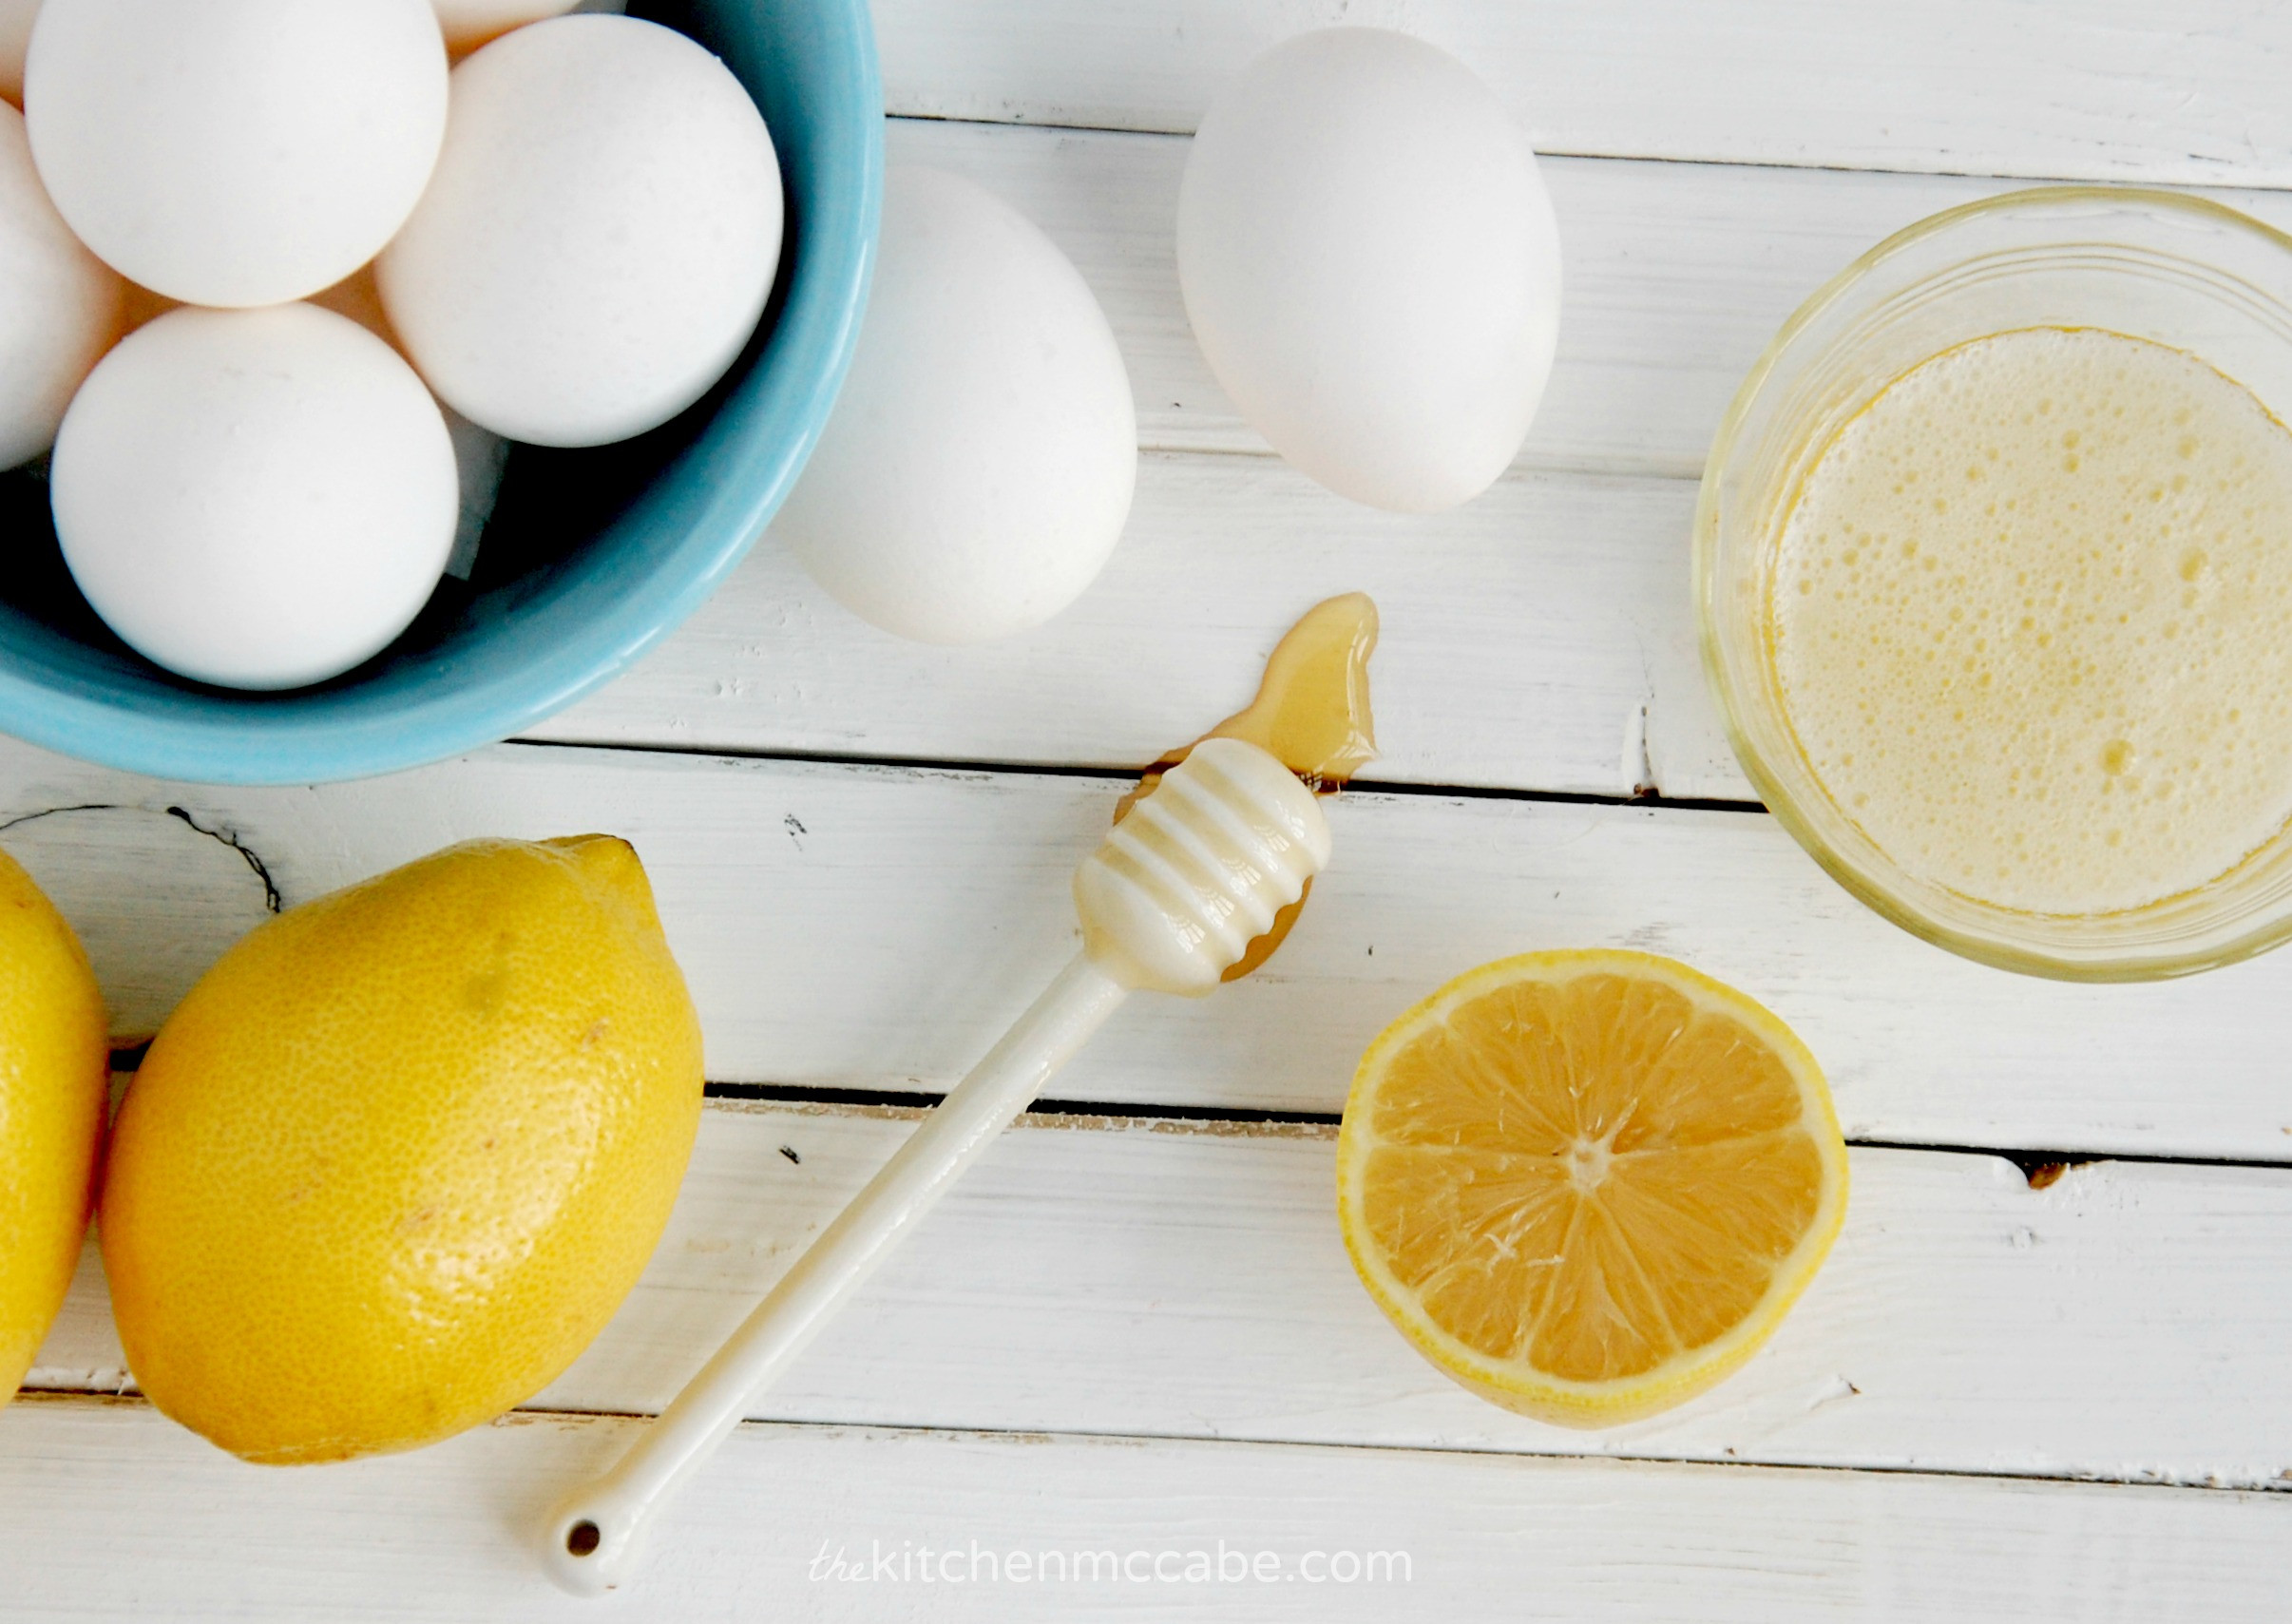 DIY Egg White Mask  DIY Brightening and Tightening Face Mask The Kitchen McCabe